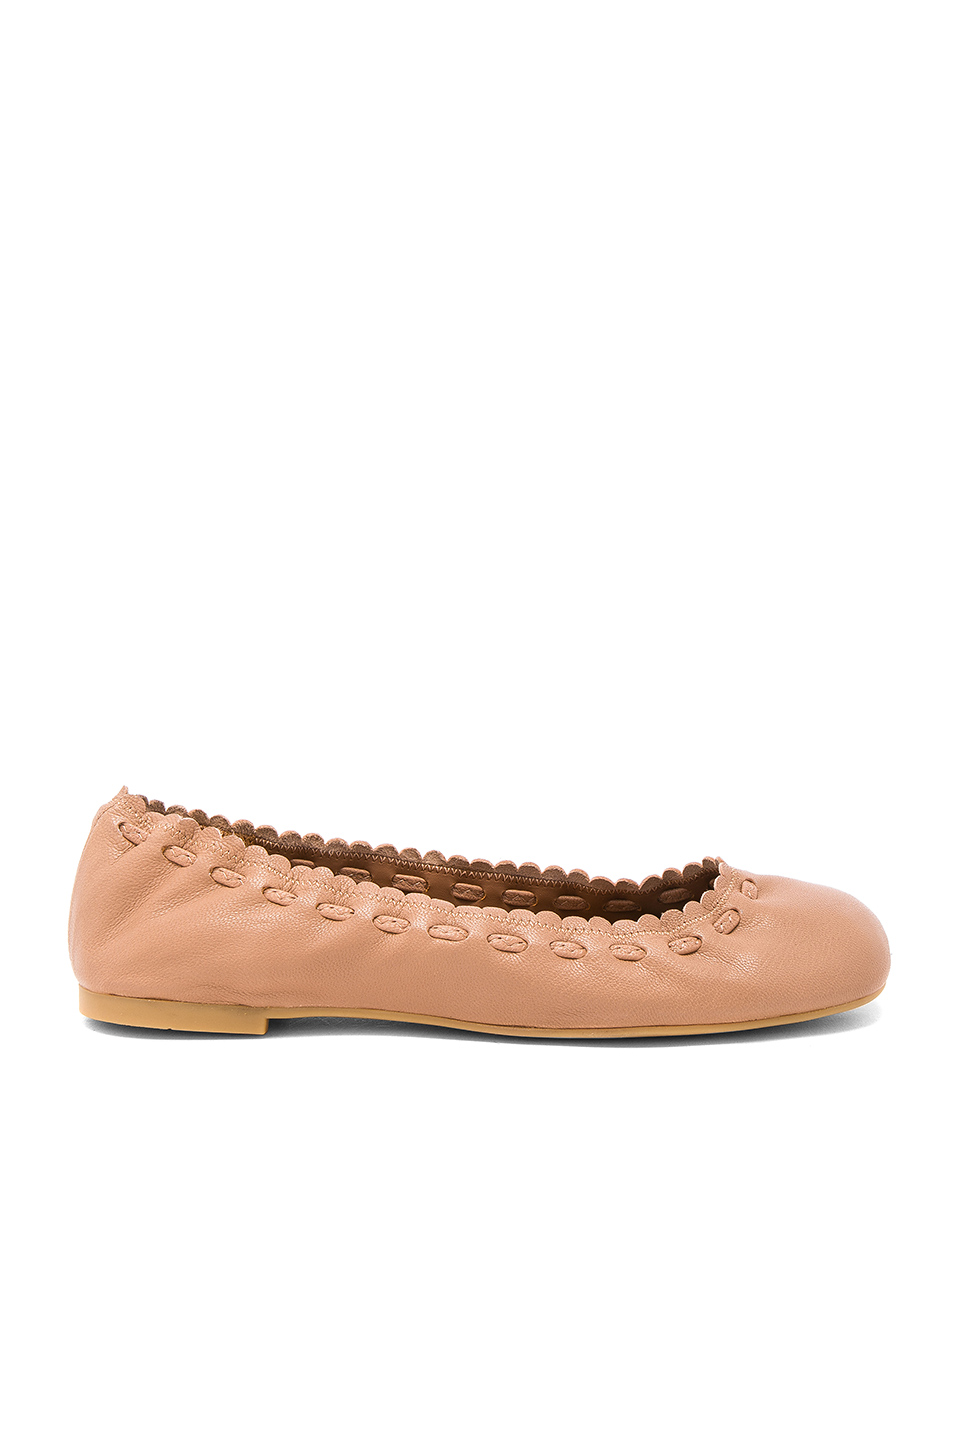 See By Chloe Jane Flat in Biscotto